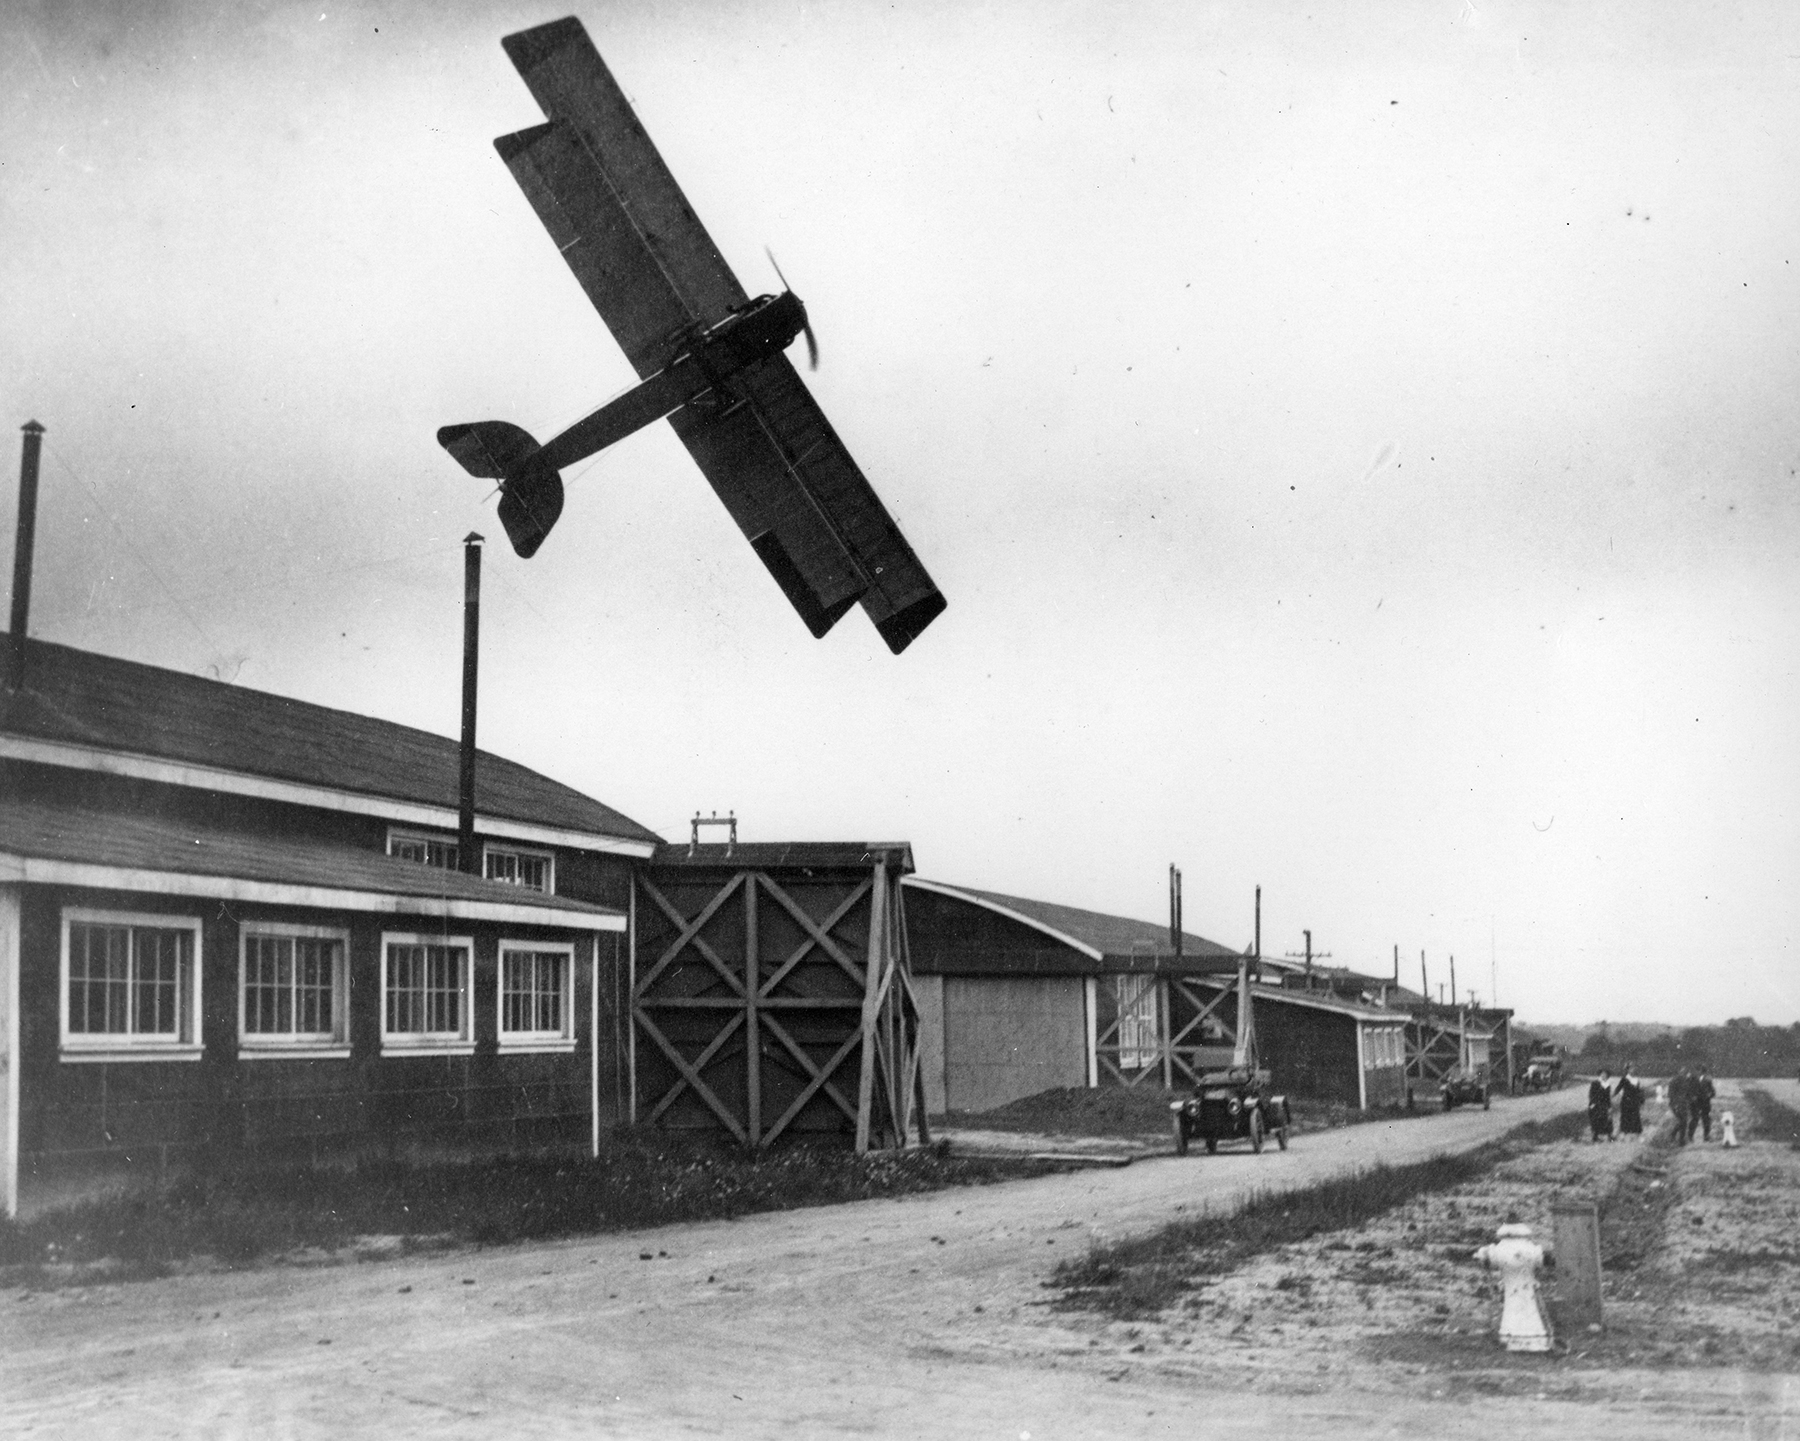 In a black and white photograph, a vintage bi-plane flies extremely low over one-storey wooden buildings.